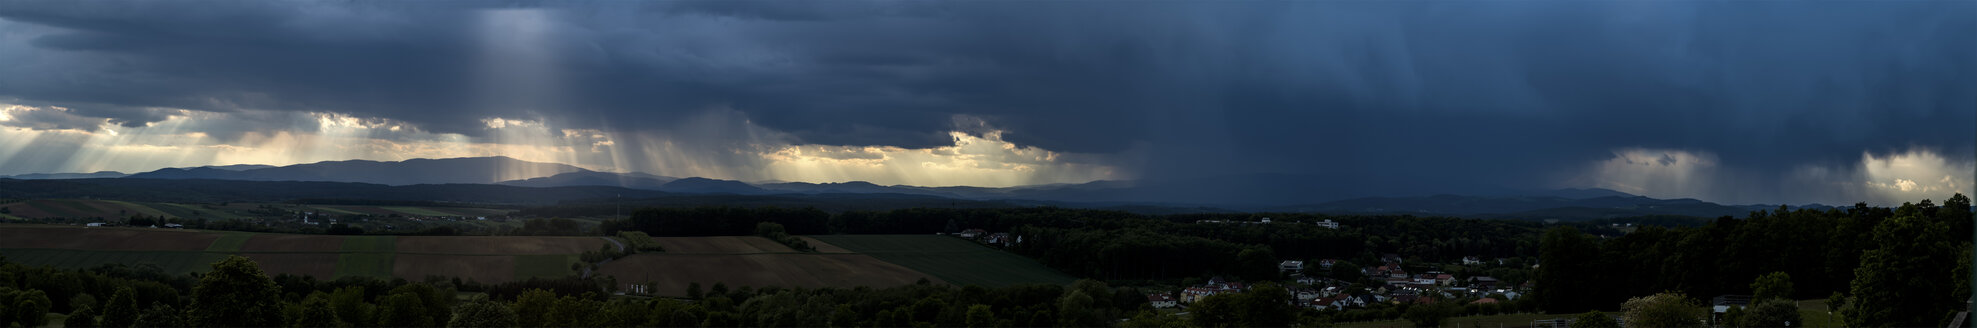 Germany, panoramic view, dark and dramatic cloudy mood during thunderstorm - EJWF00899